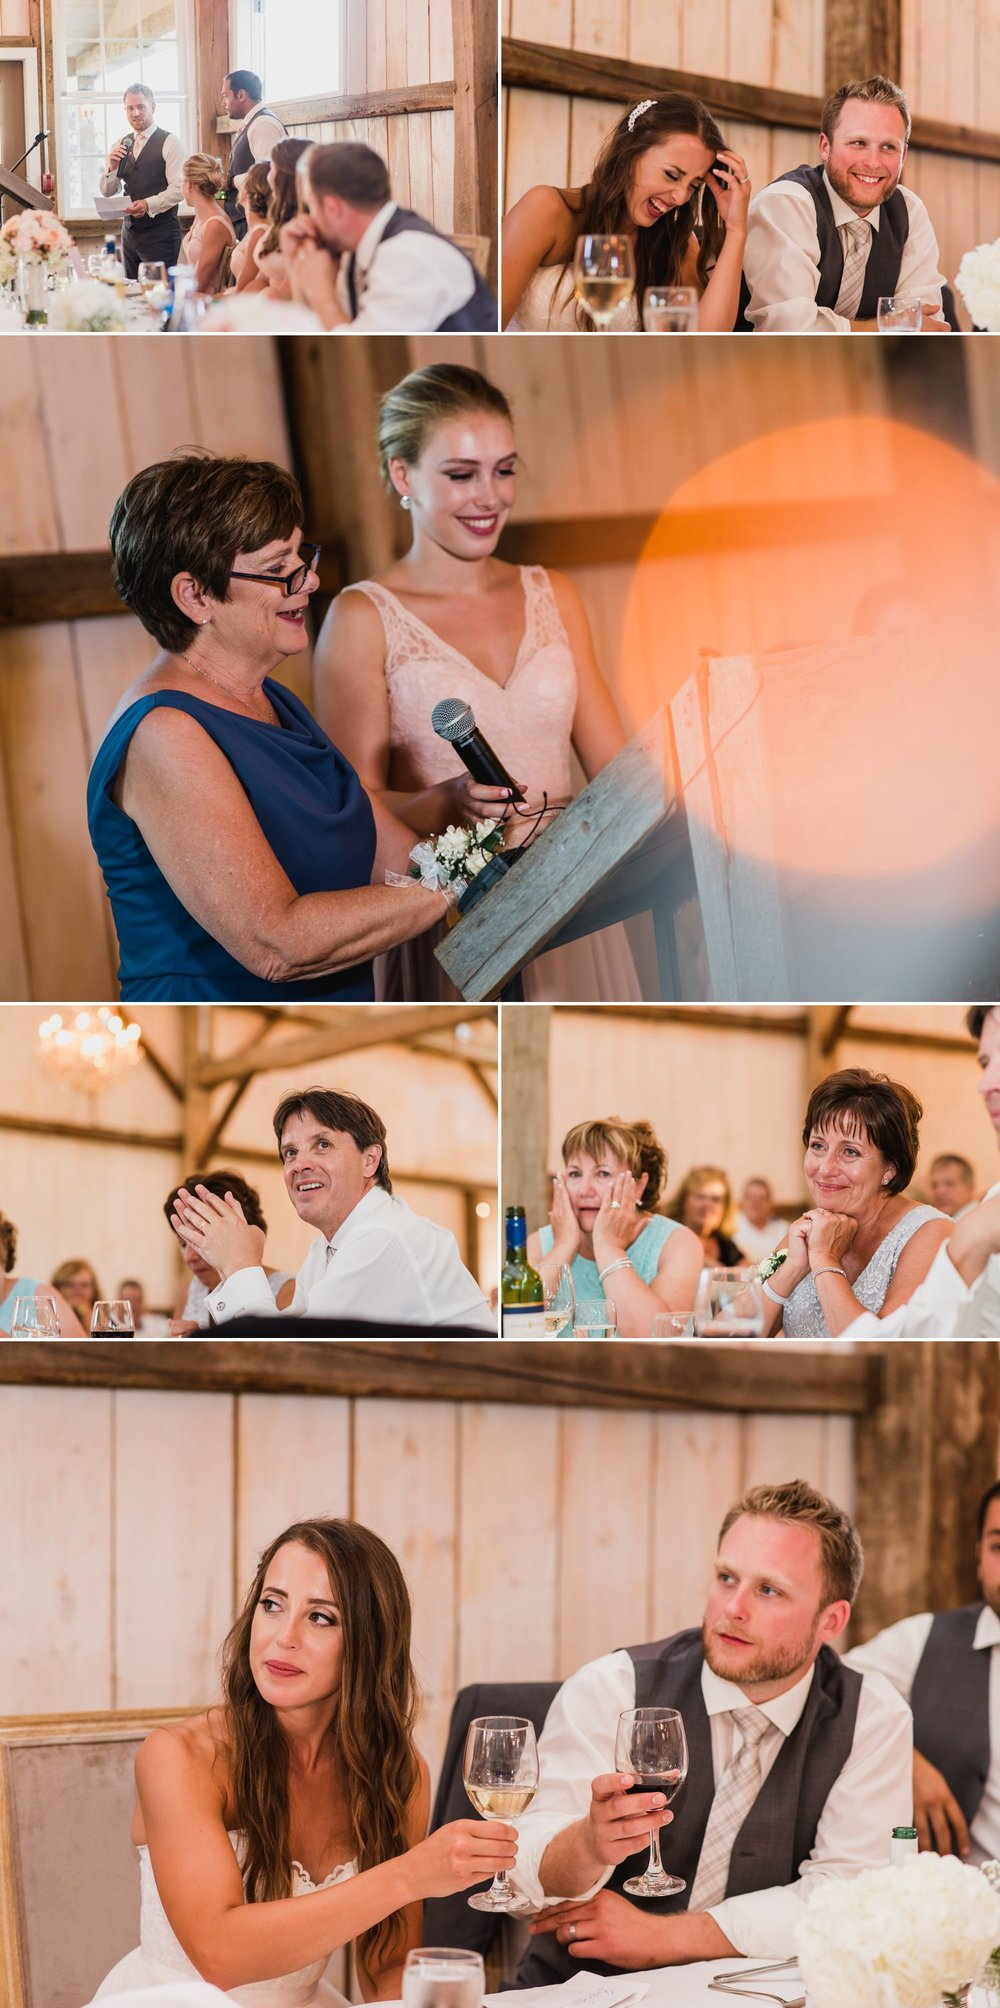 The bride and groom enjoying their wedding speeches during their wedding reception at Stonefields Heritage Farm